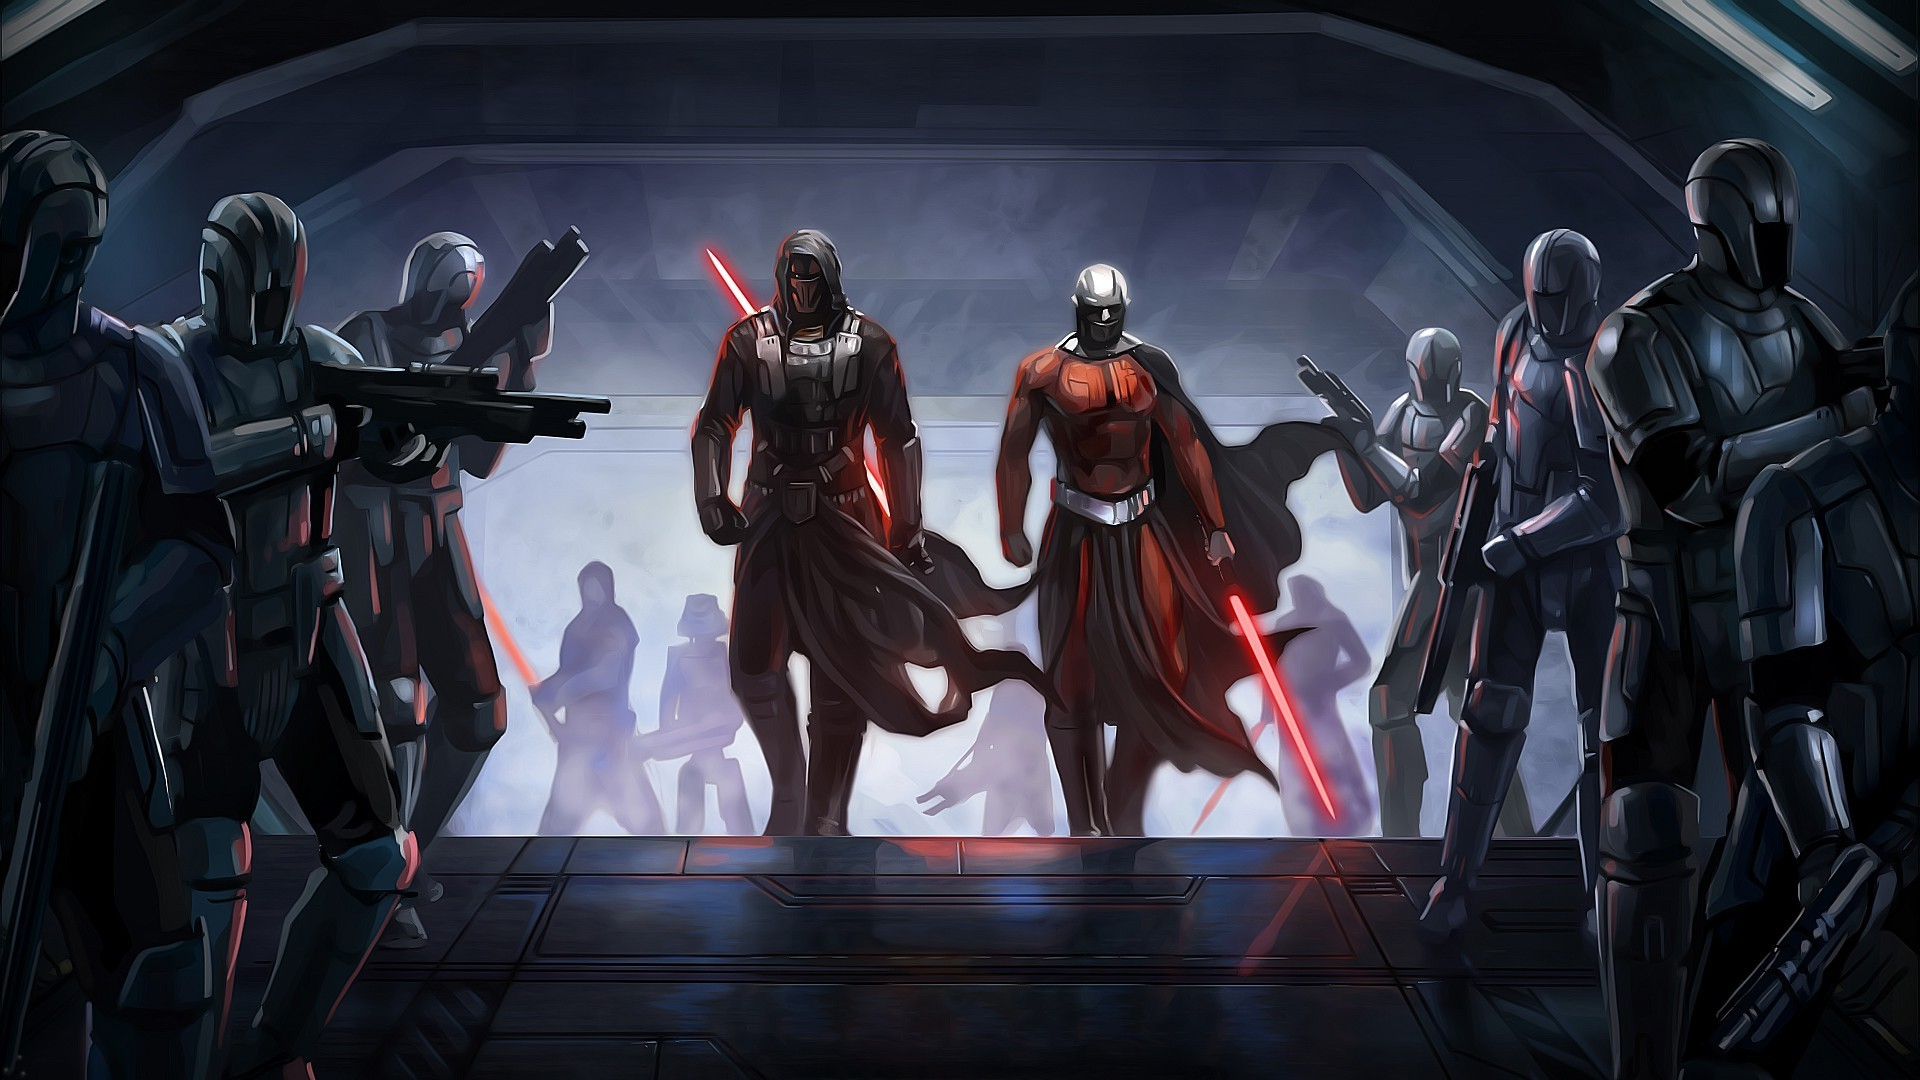 Star Wars Wallpapers The Art Mad Wallpapers 1920x1080